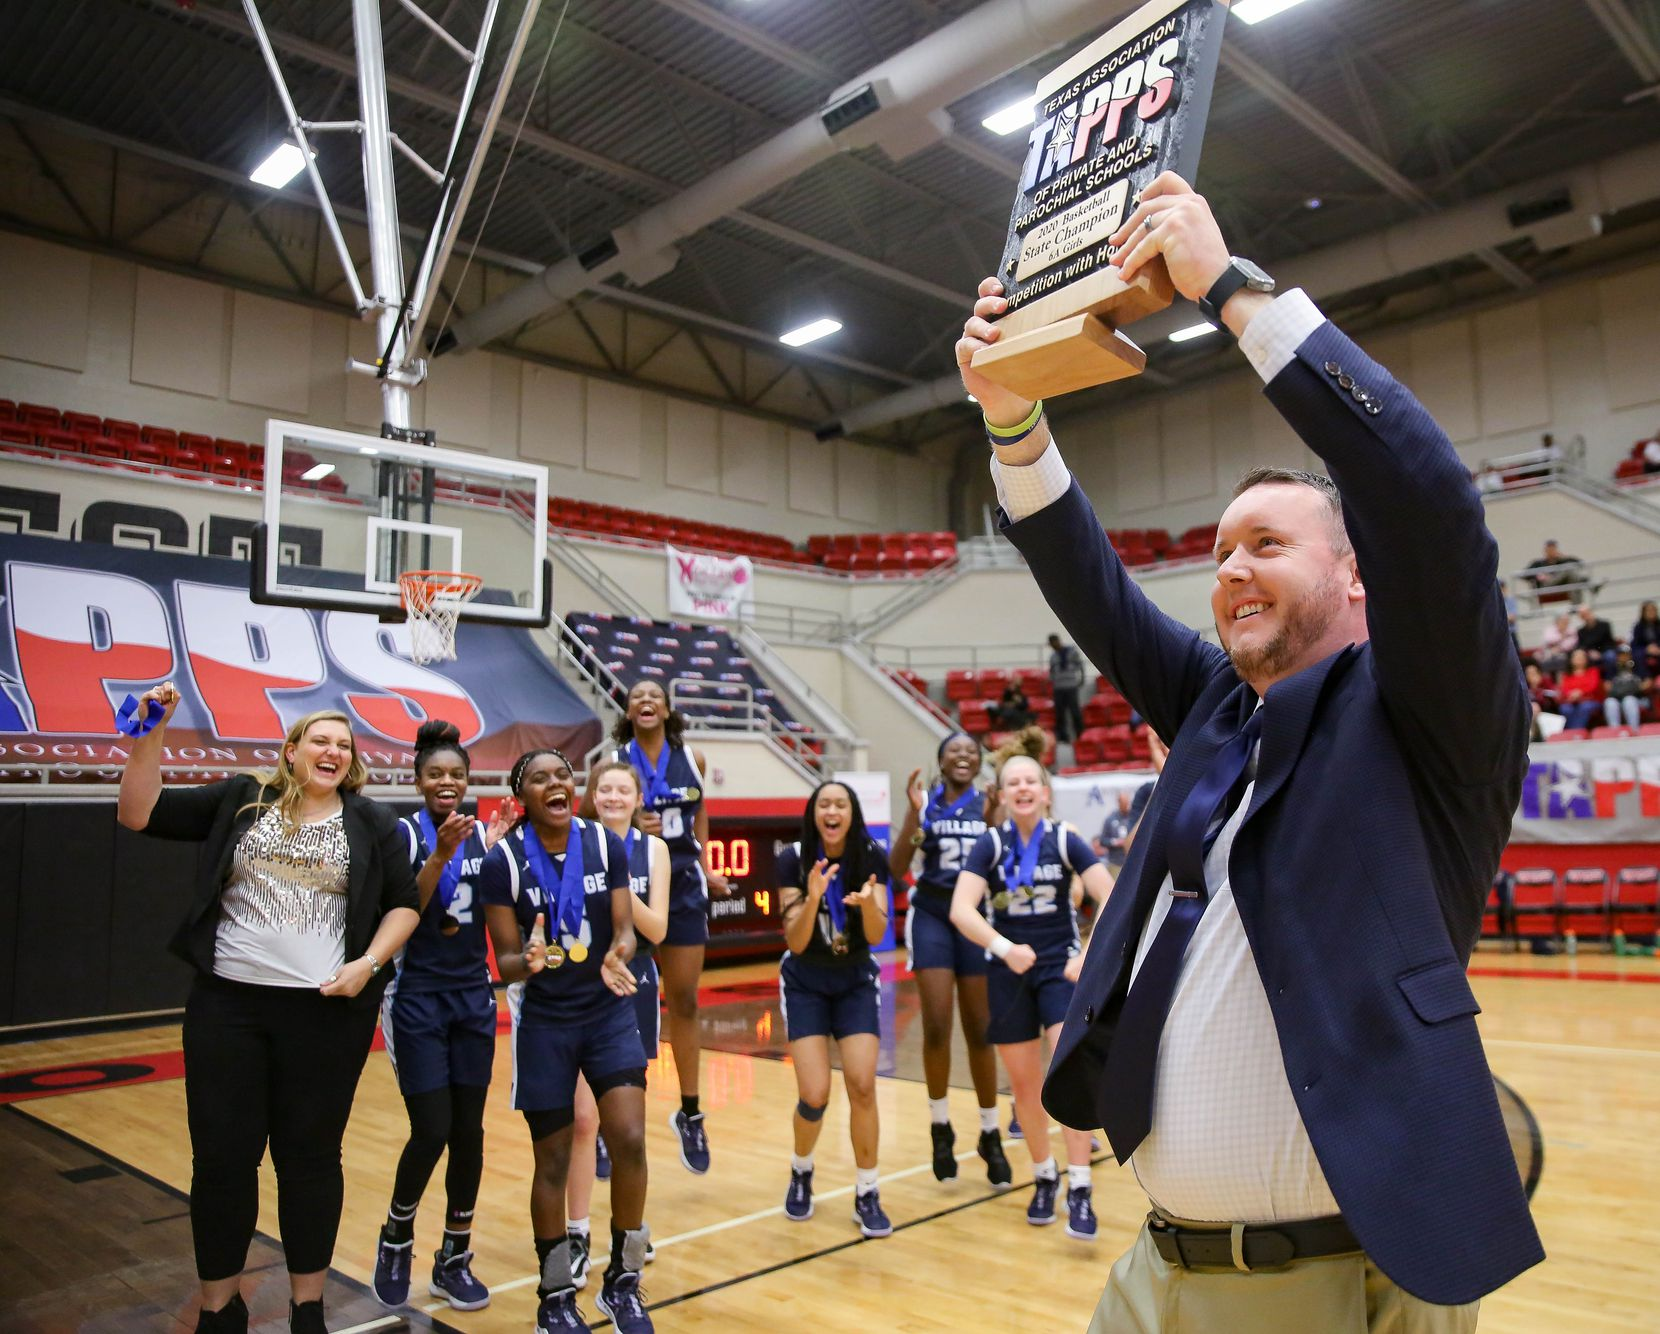 The Village School coach Doug Brotherton celebrates after beating Plano Prestonwood Christian during a TAPPS Class 6A girls basketball state championship game on Feb. 28, 2020 in West. Prestonwood lost 75-48.